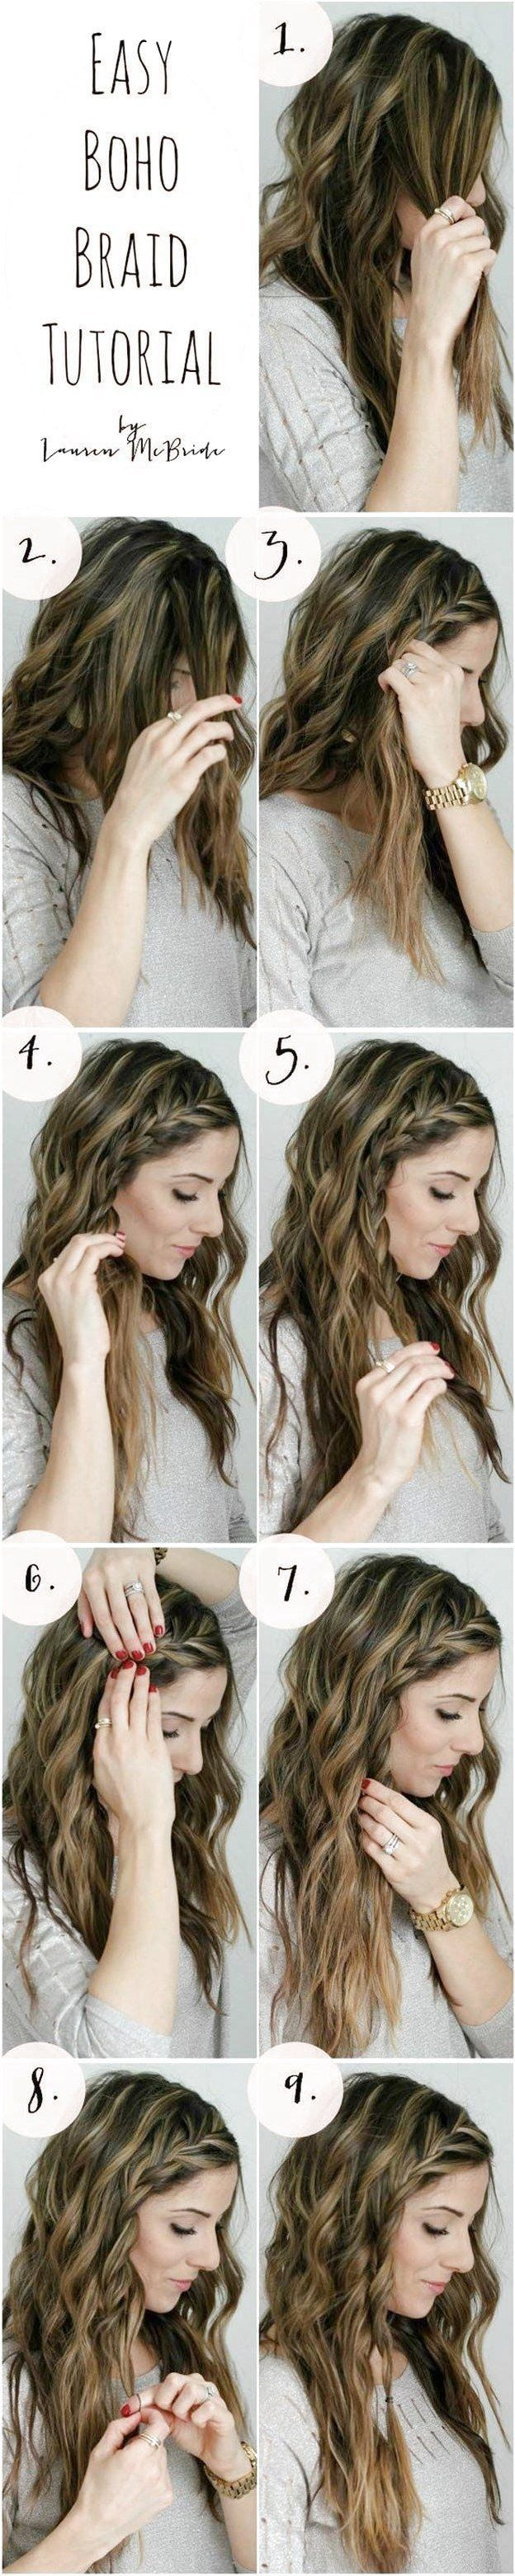 Absolutely beautiful braid tutorial #braids # upside down Braids tutorial